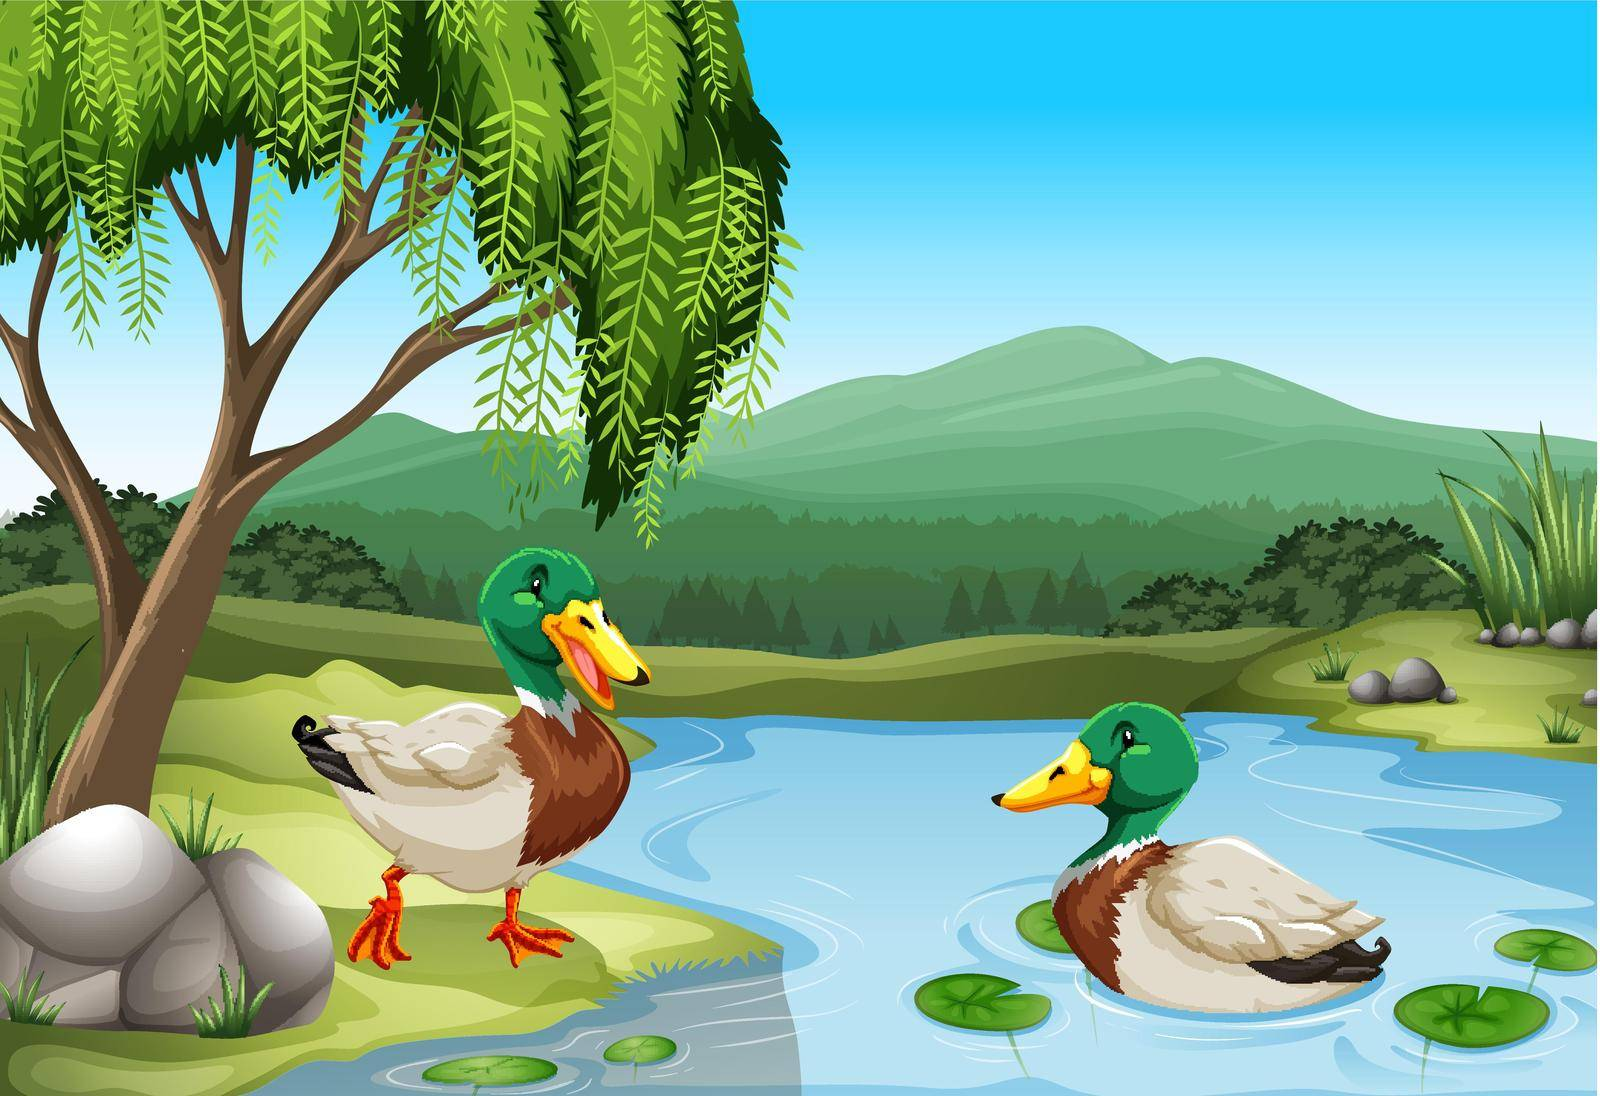 Two ducks relaxing by the pond